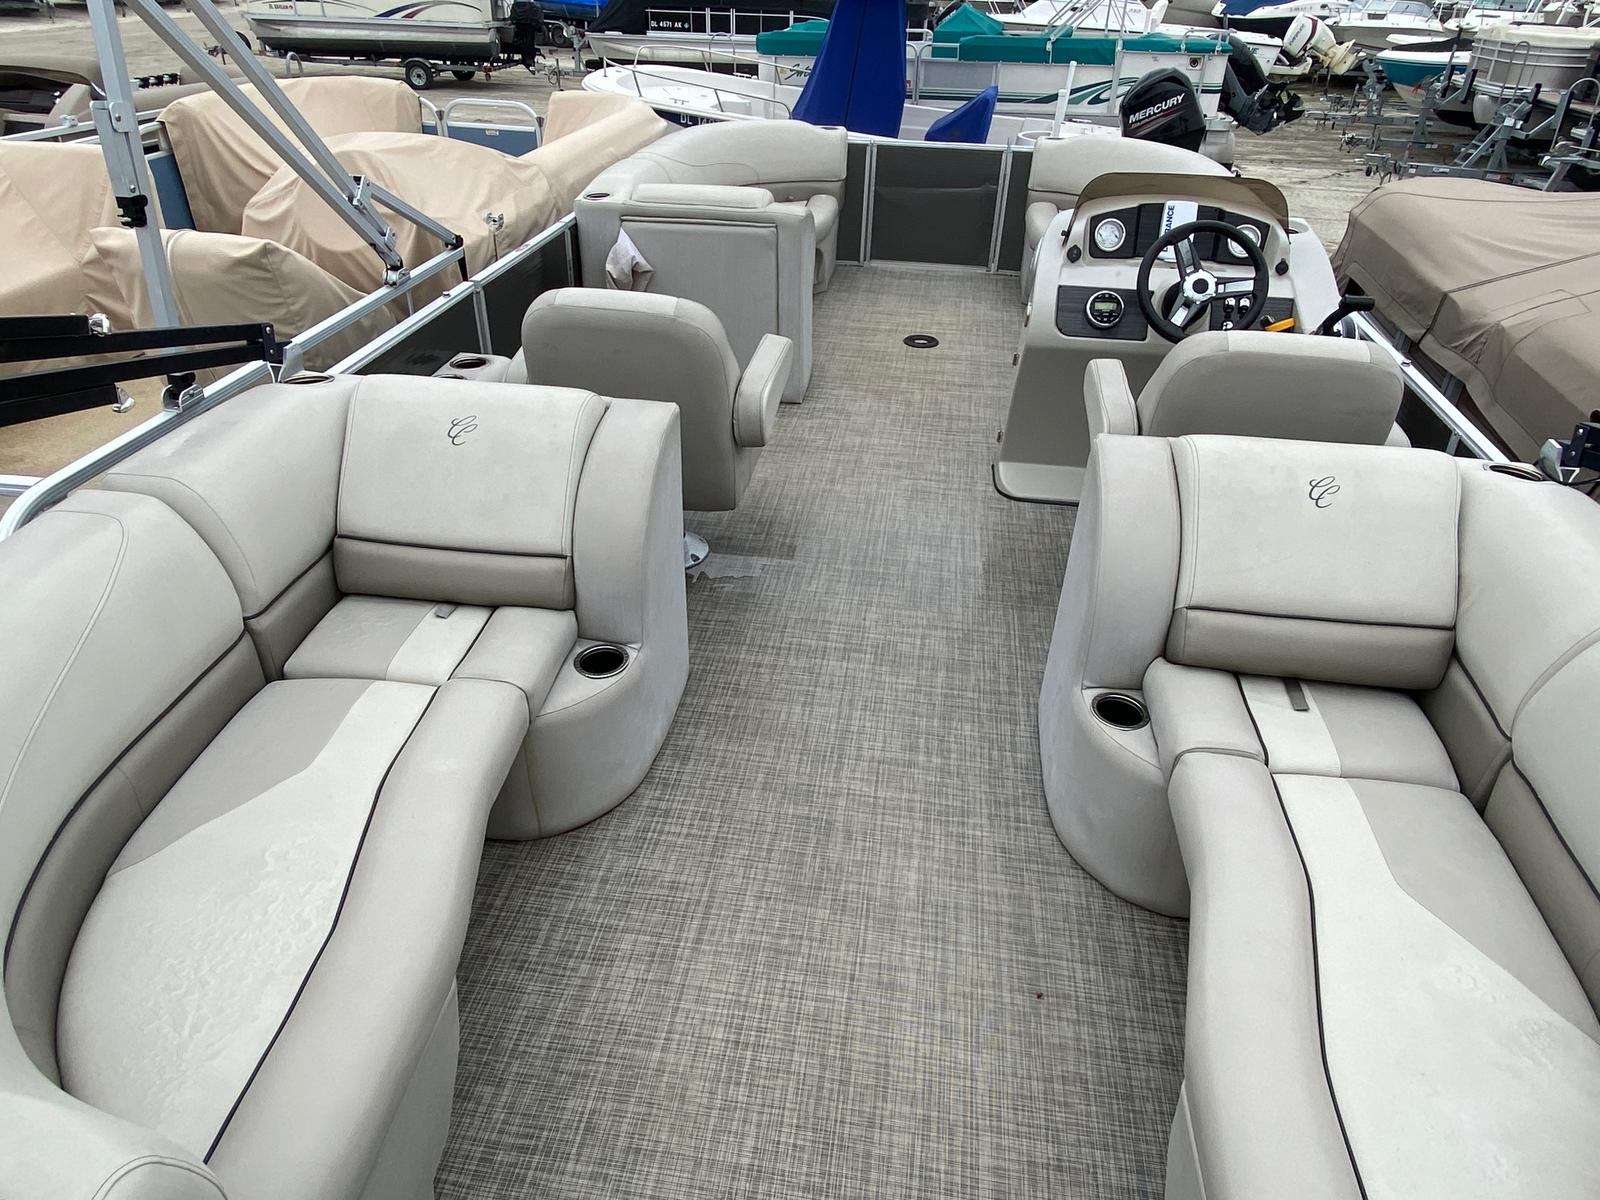 2017 Cypress Cay boat for sale, model of the boat is Seabreeze 232 & Image # 4 of 11